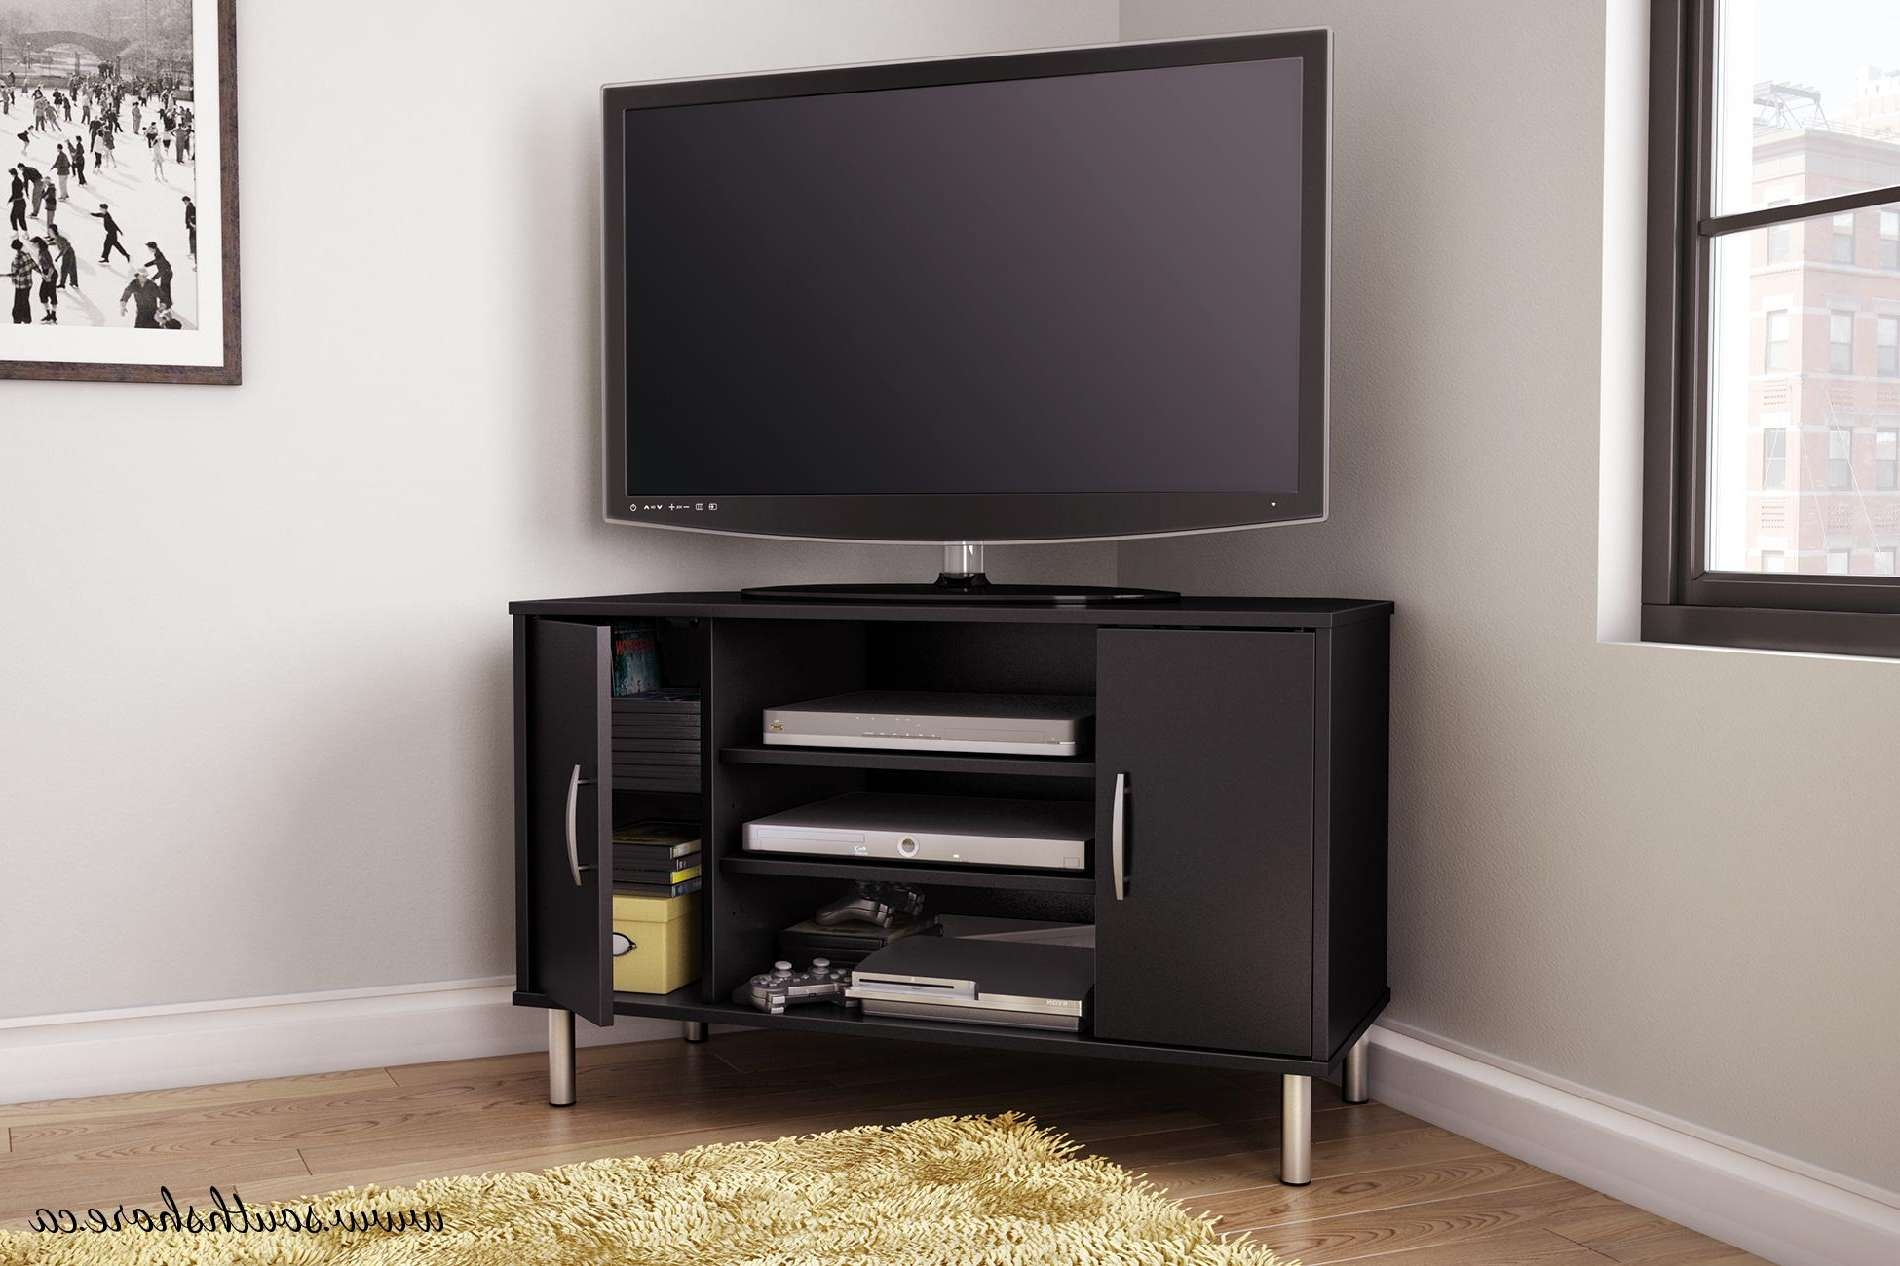 Corner Tv Stand Black | Home Design Ideas With Regard To Tv Stands For Corners (View 4 of 20)